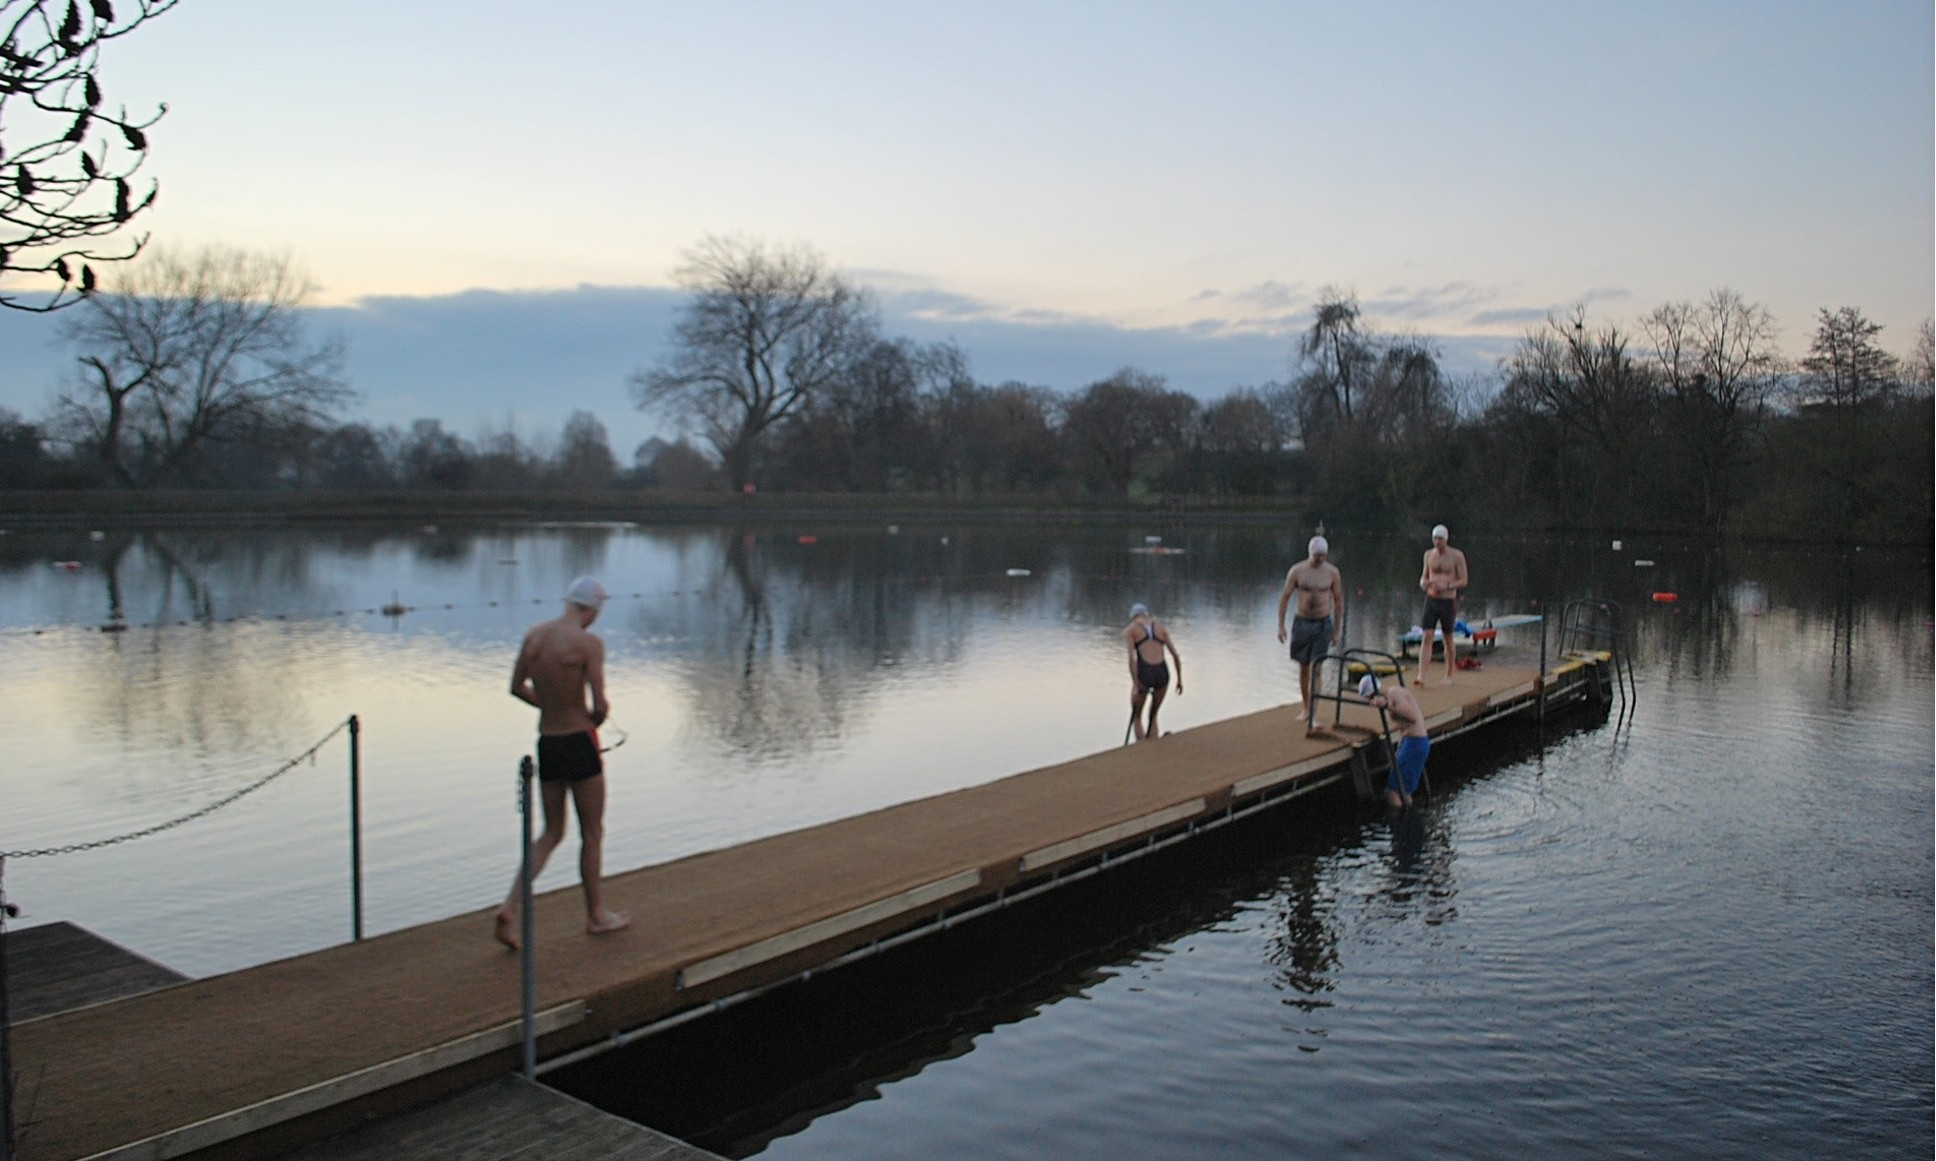 The perfect joy of swimming and running through London